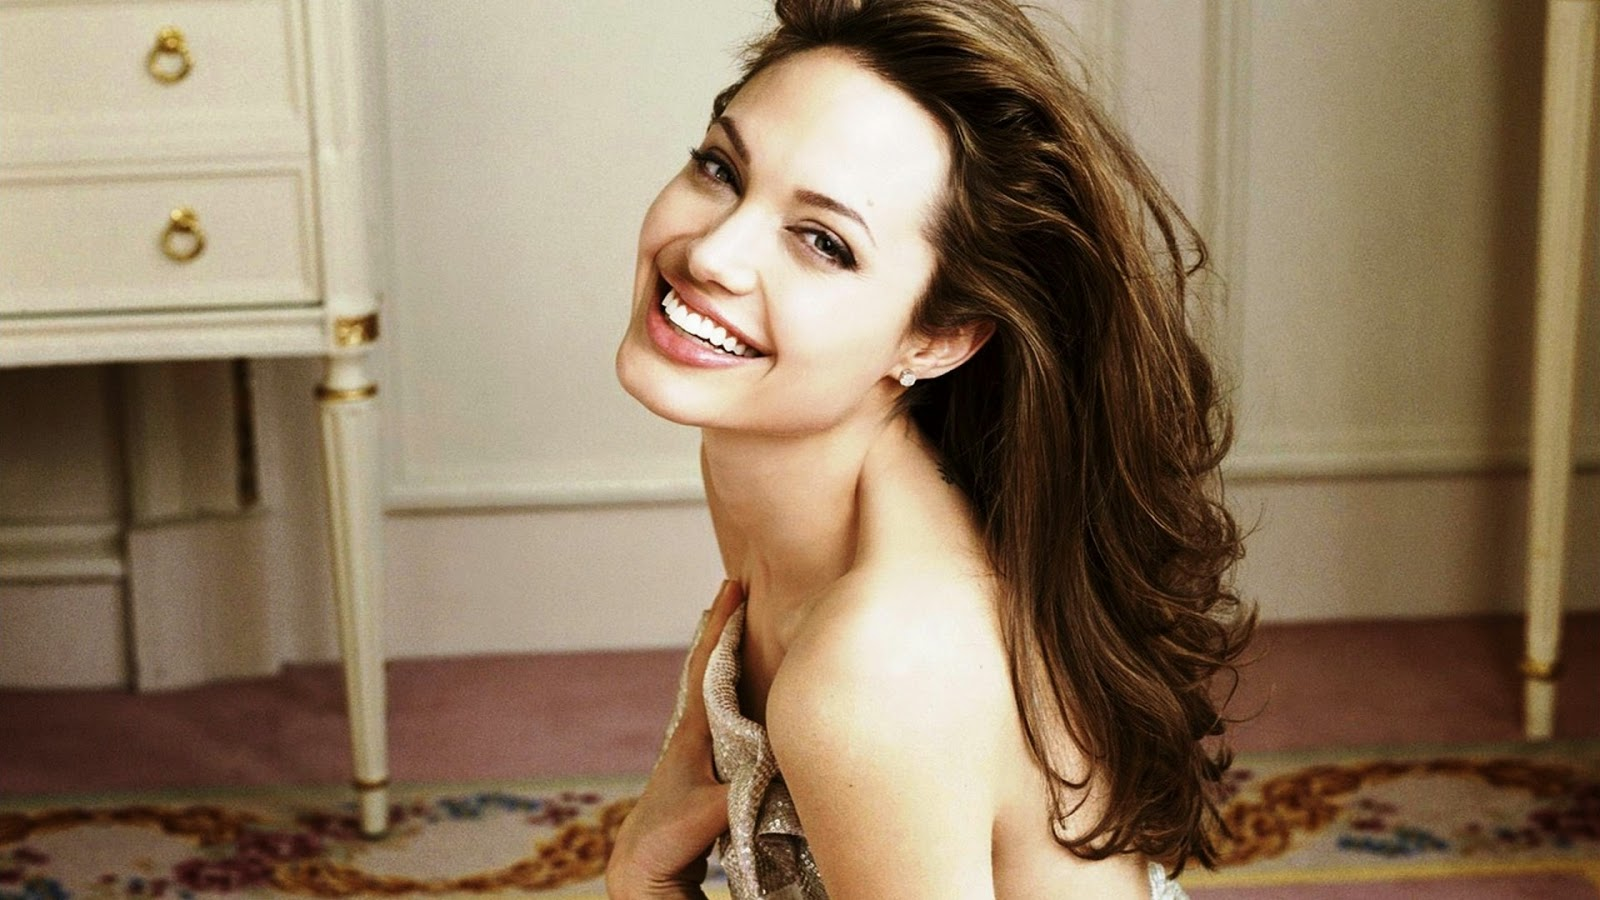 film stars world: angelina jolie hot wallpapers 2014